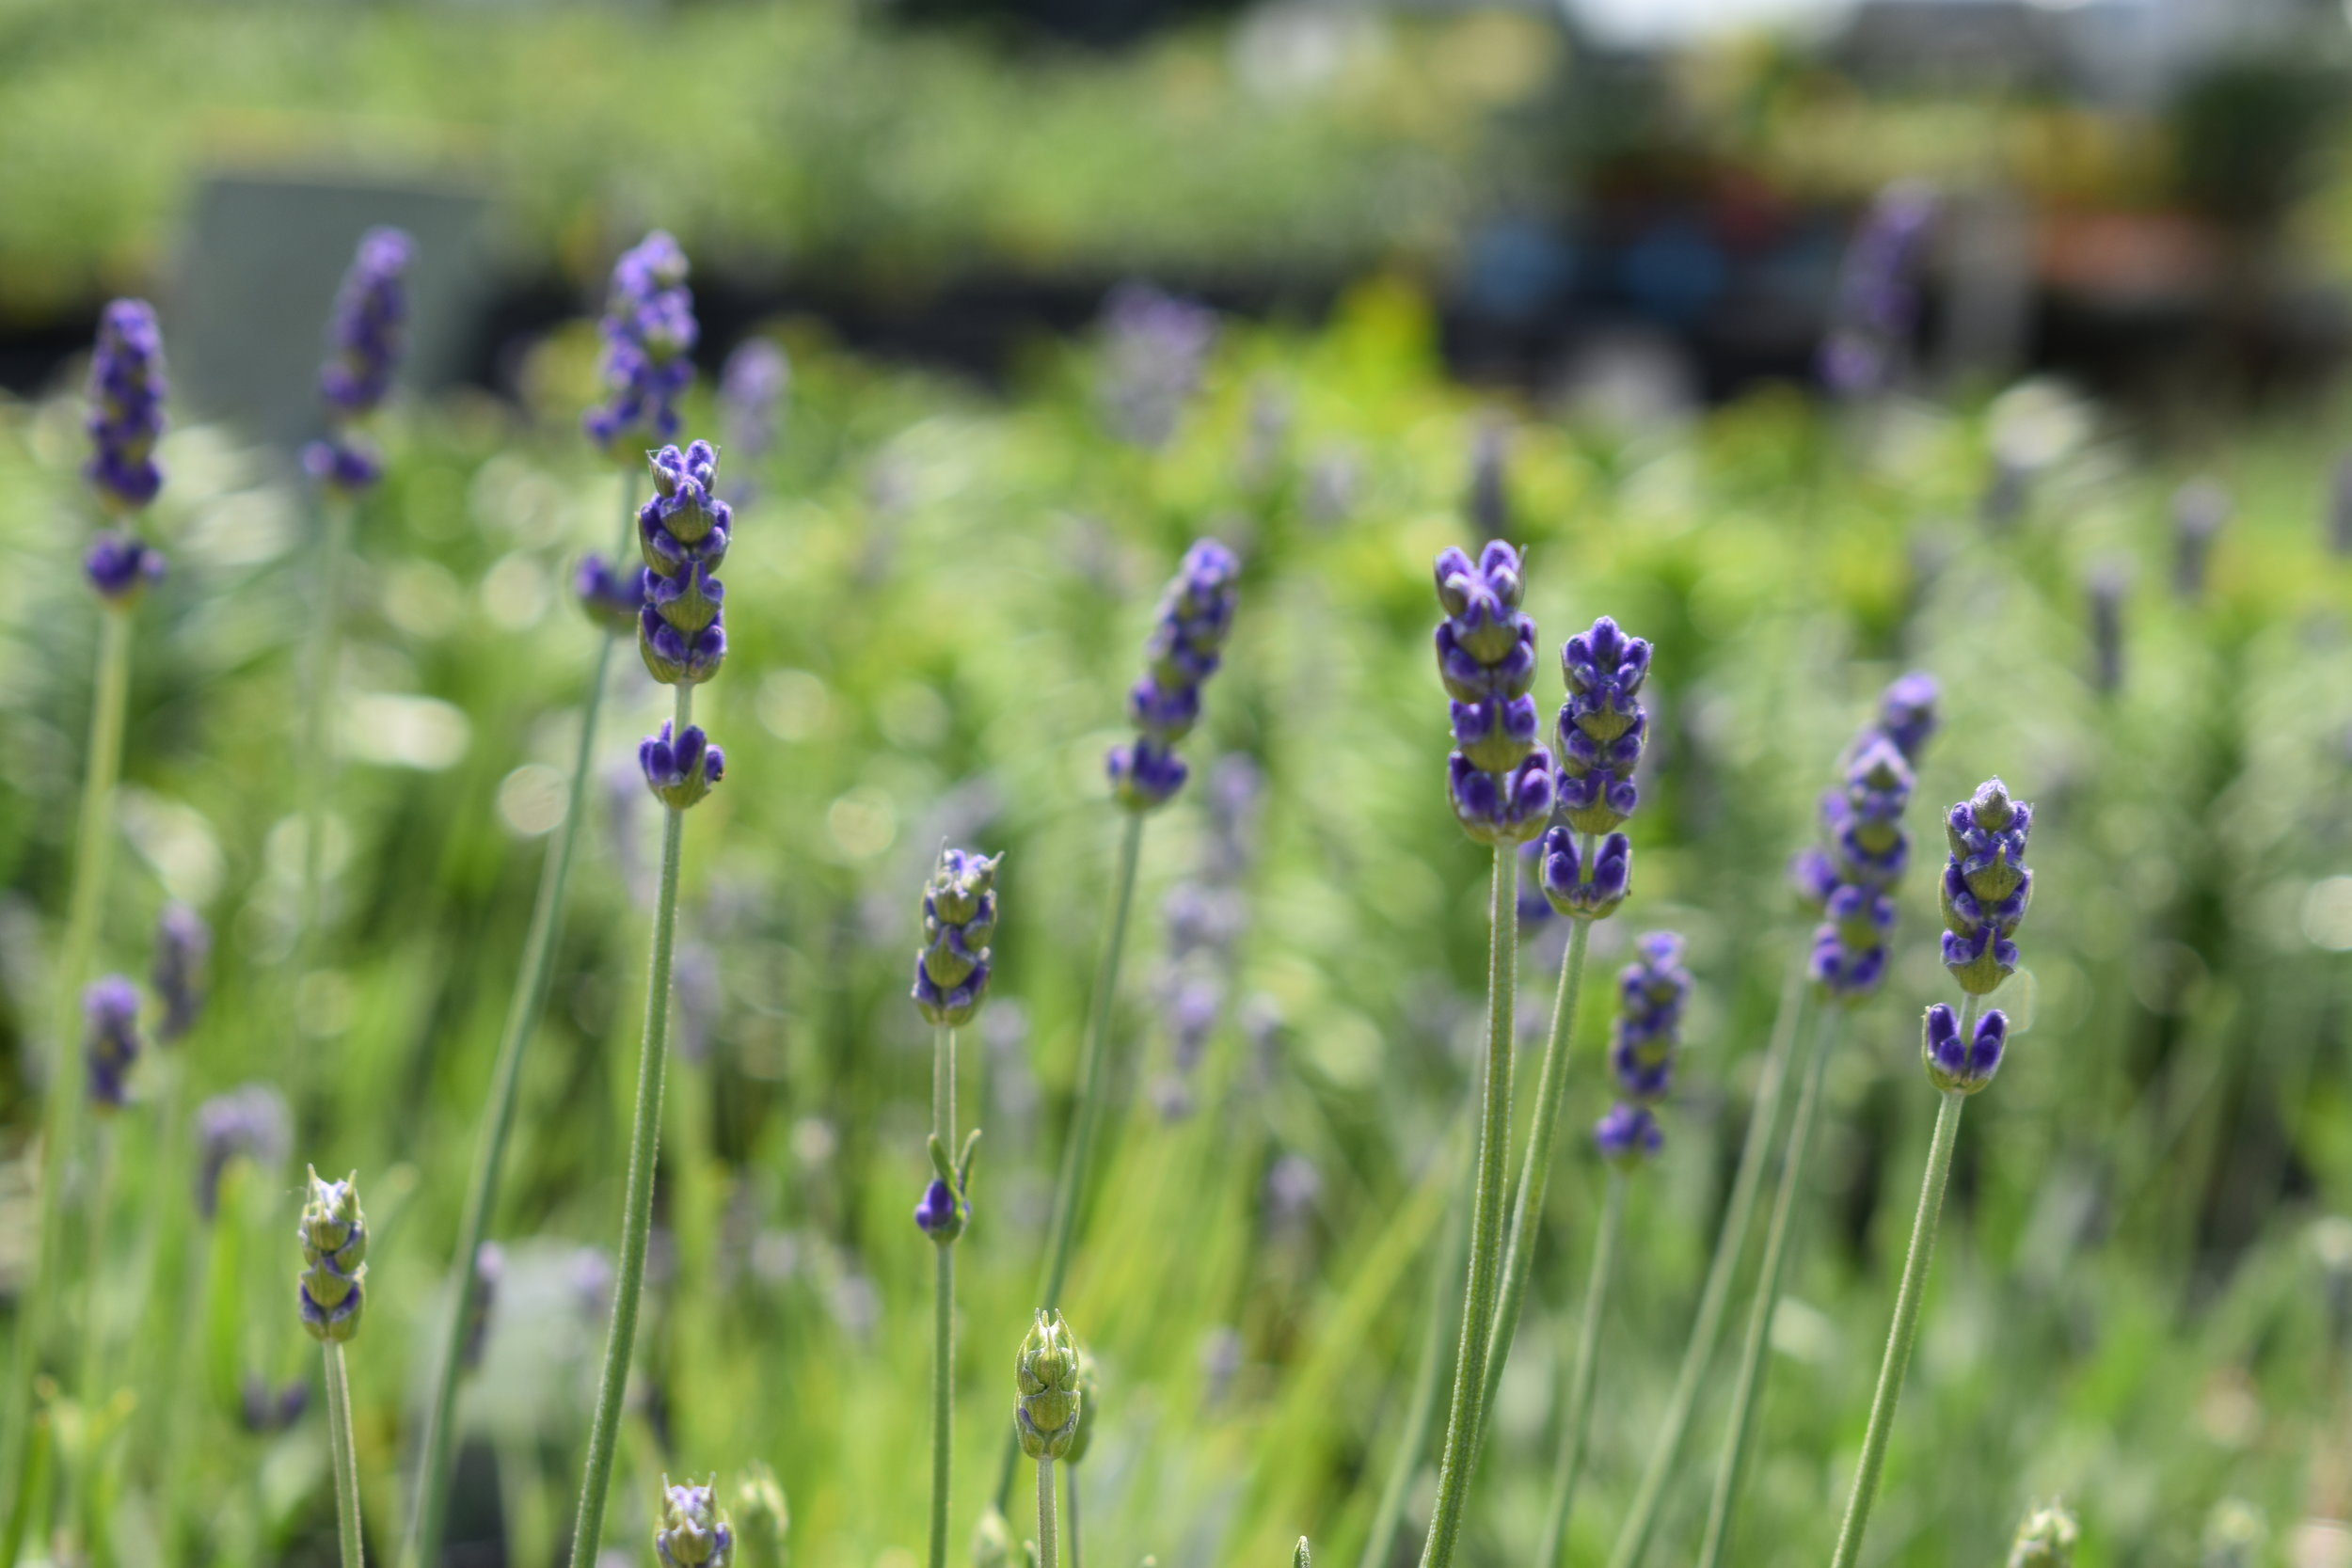 Perennials - Perennial flowers bloom part time of the spring and summer, but they are winter hardy. Meaning they will come back year after year unlike annuals.